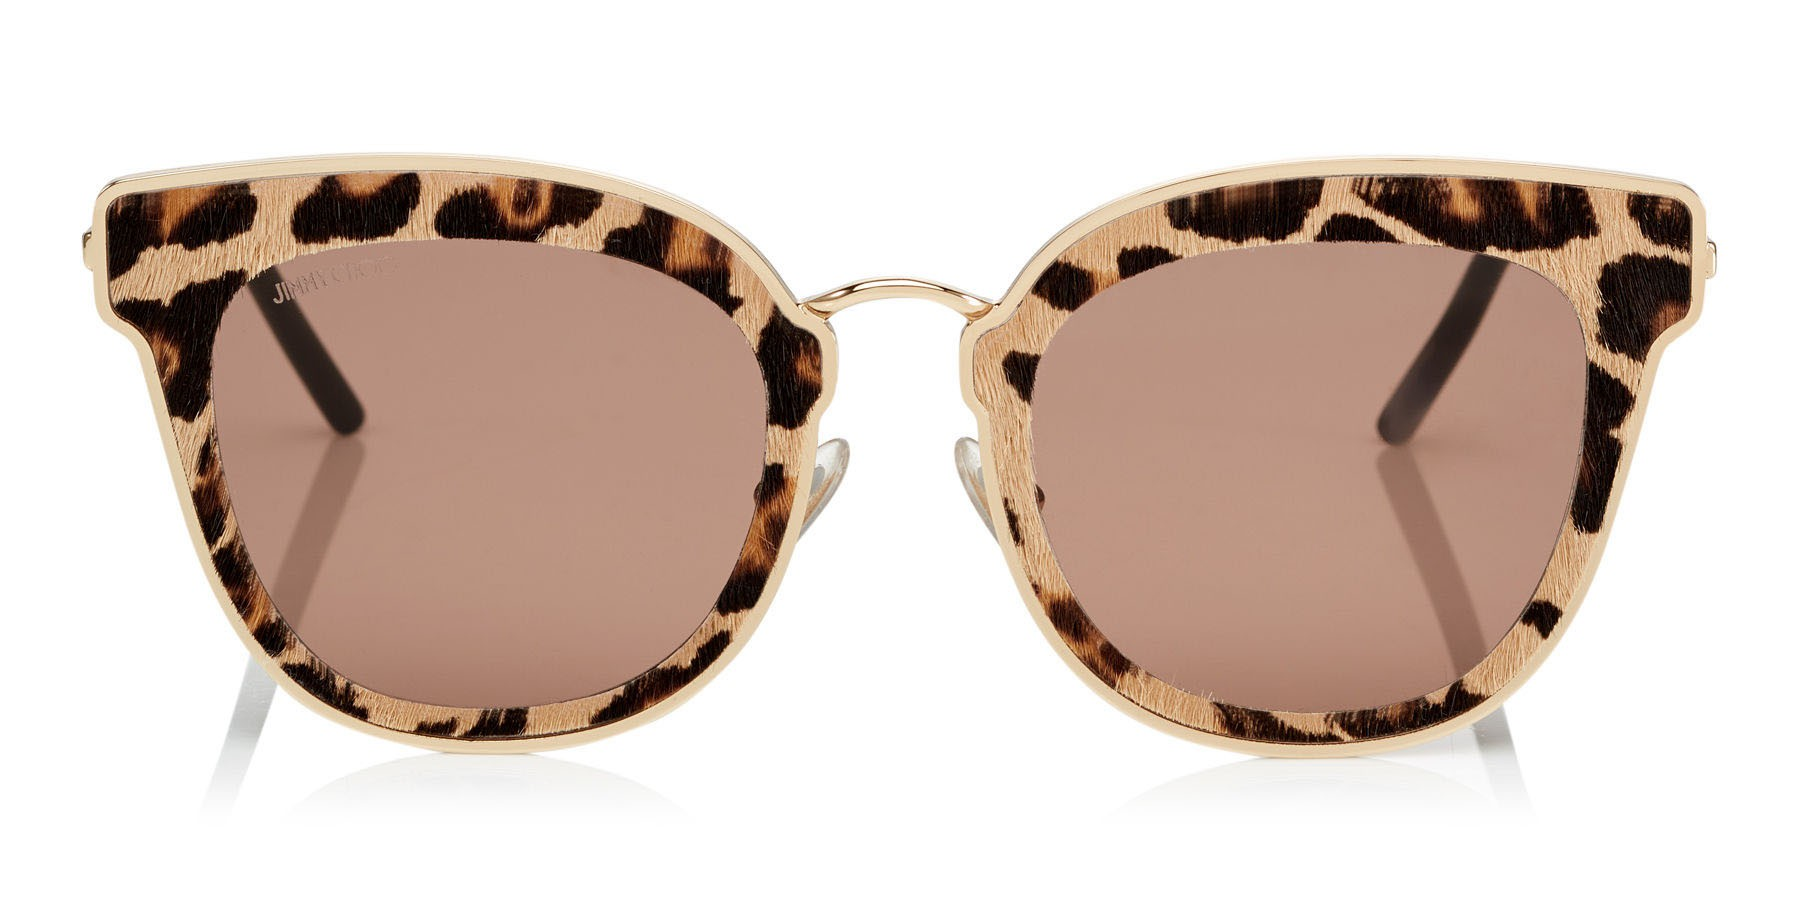 6682eb0fa1e7 Jimmy Choo - Nile - Rose Gold Metal Cat-Eye Sunglasses with Leopard Leather  Detailing - Sunglasses - Jimmy Choo Eyewear